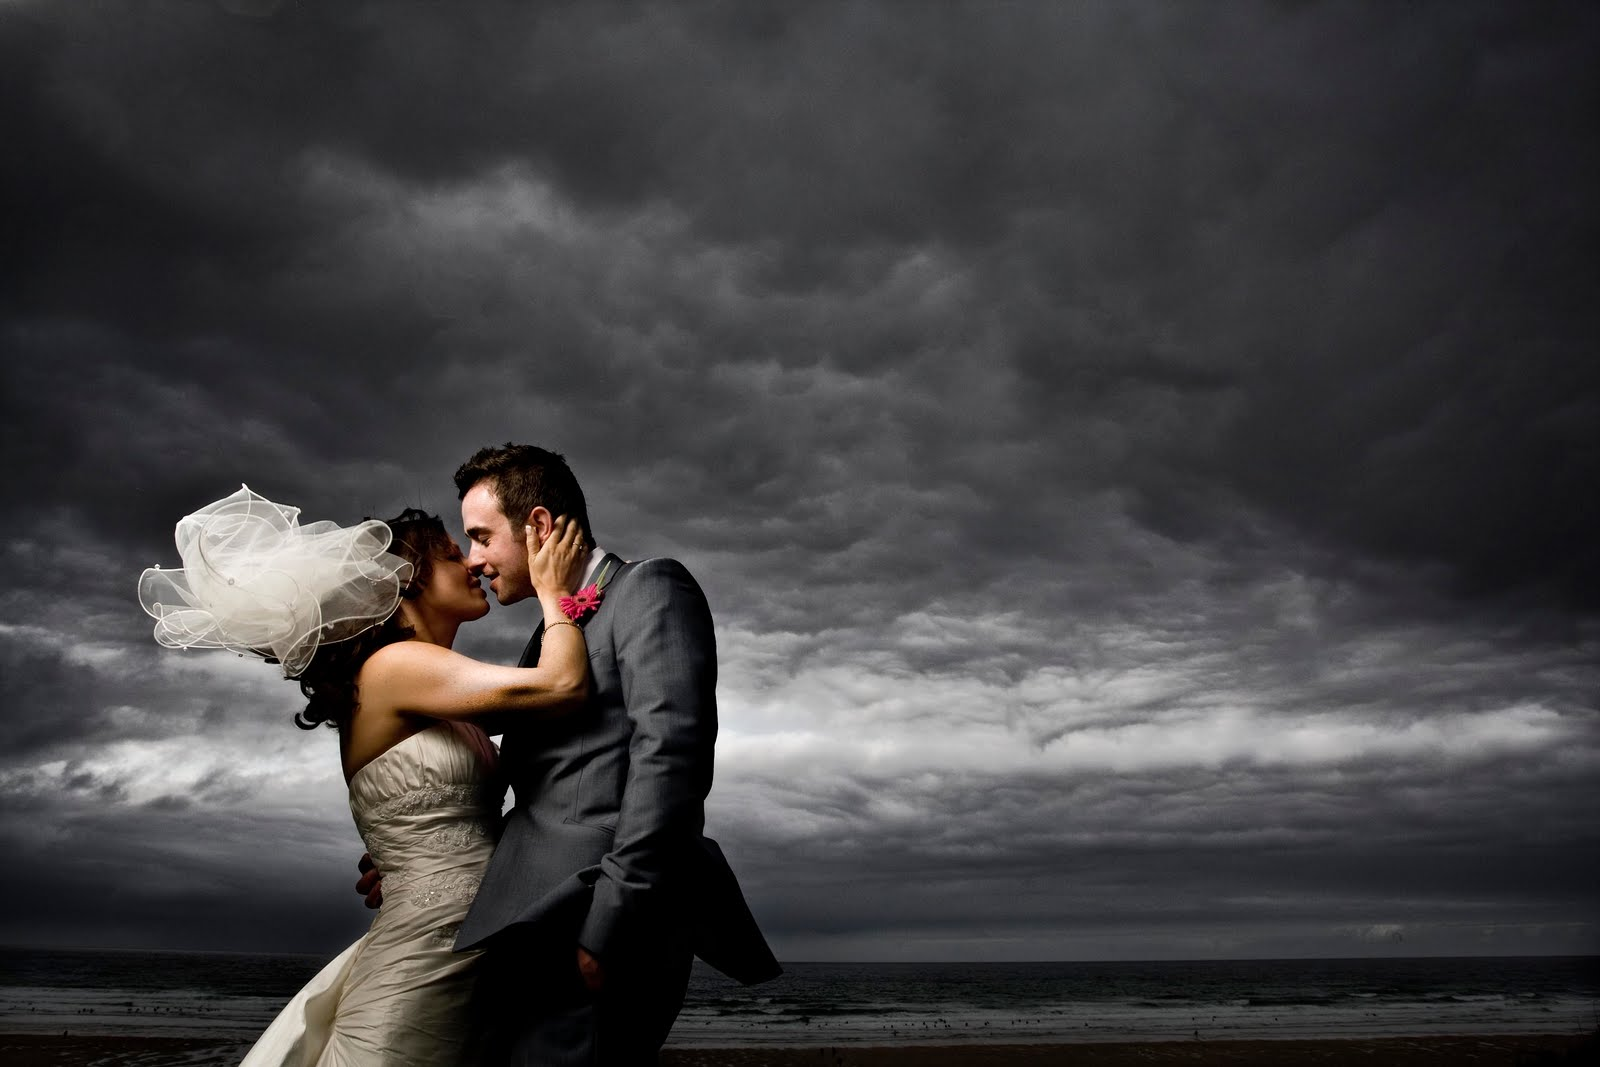 Wedding+photography+in+a+bad+weather.jpg